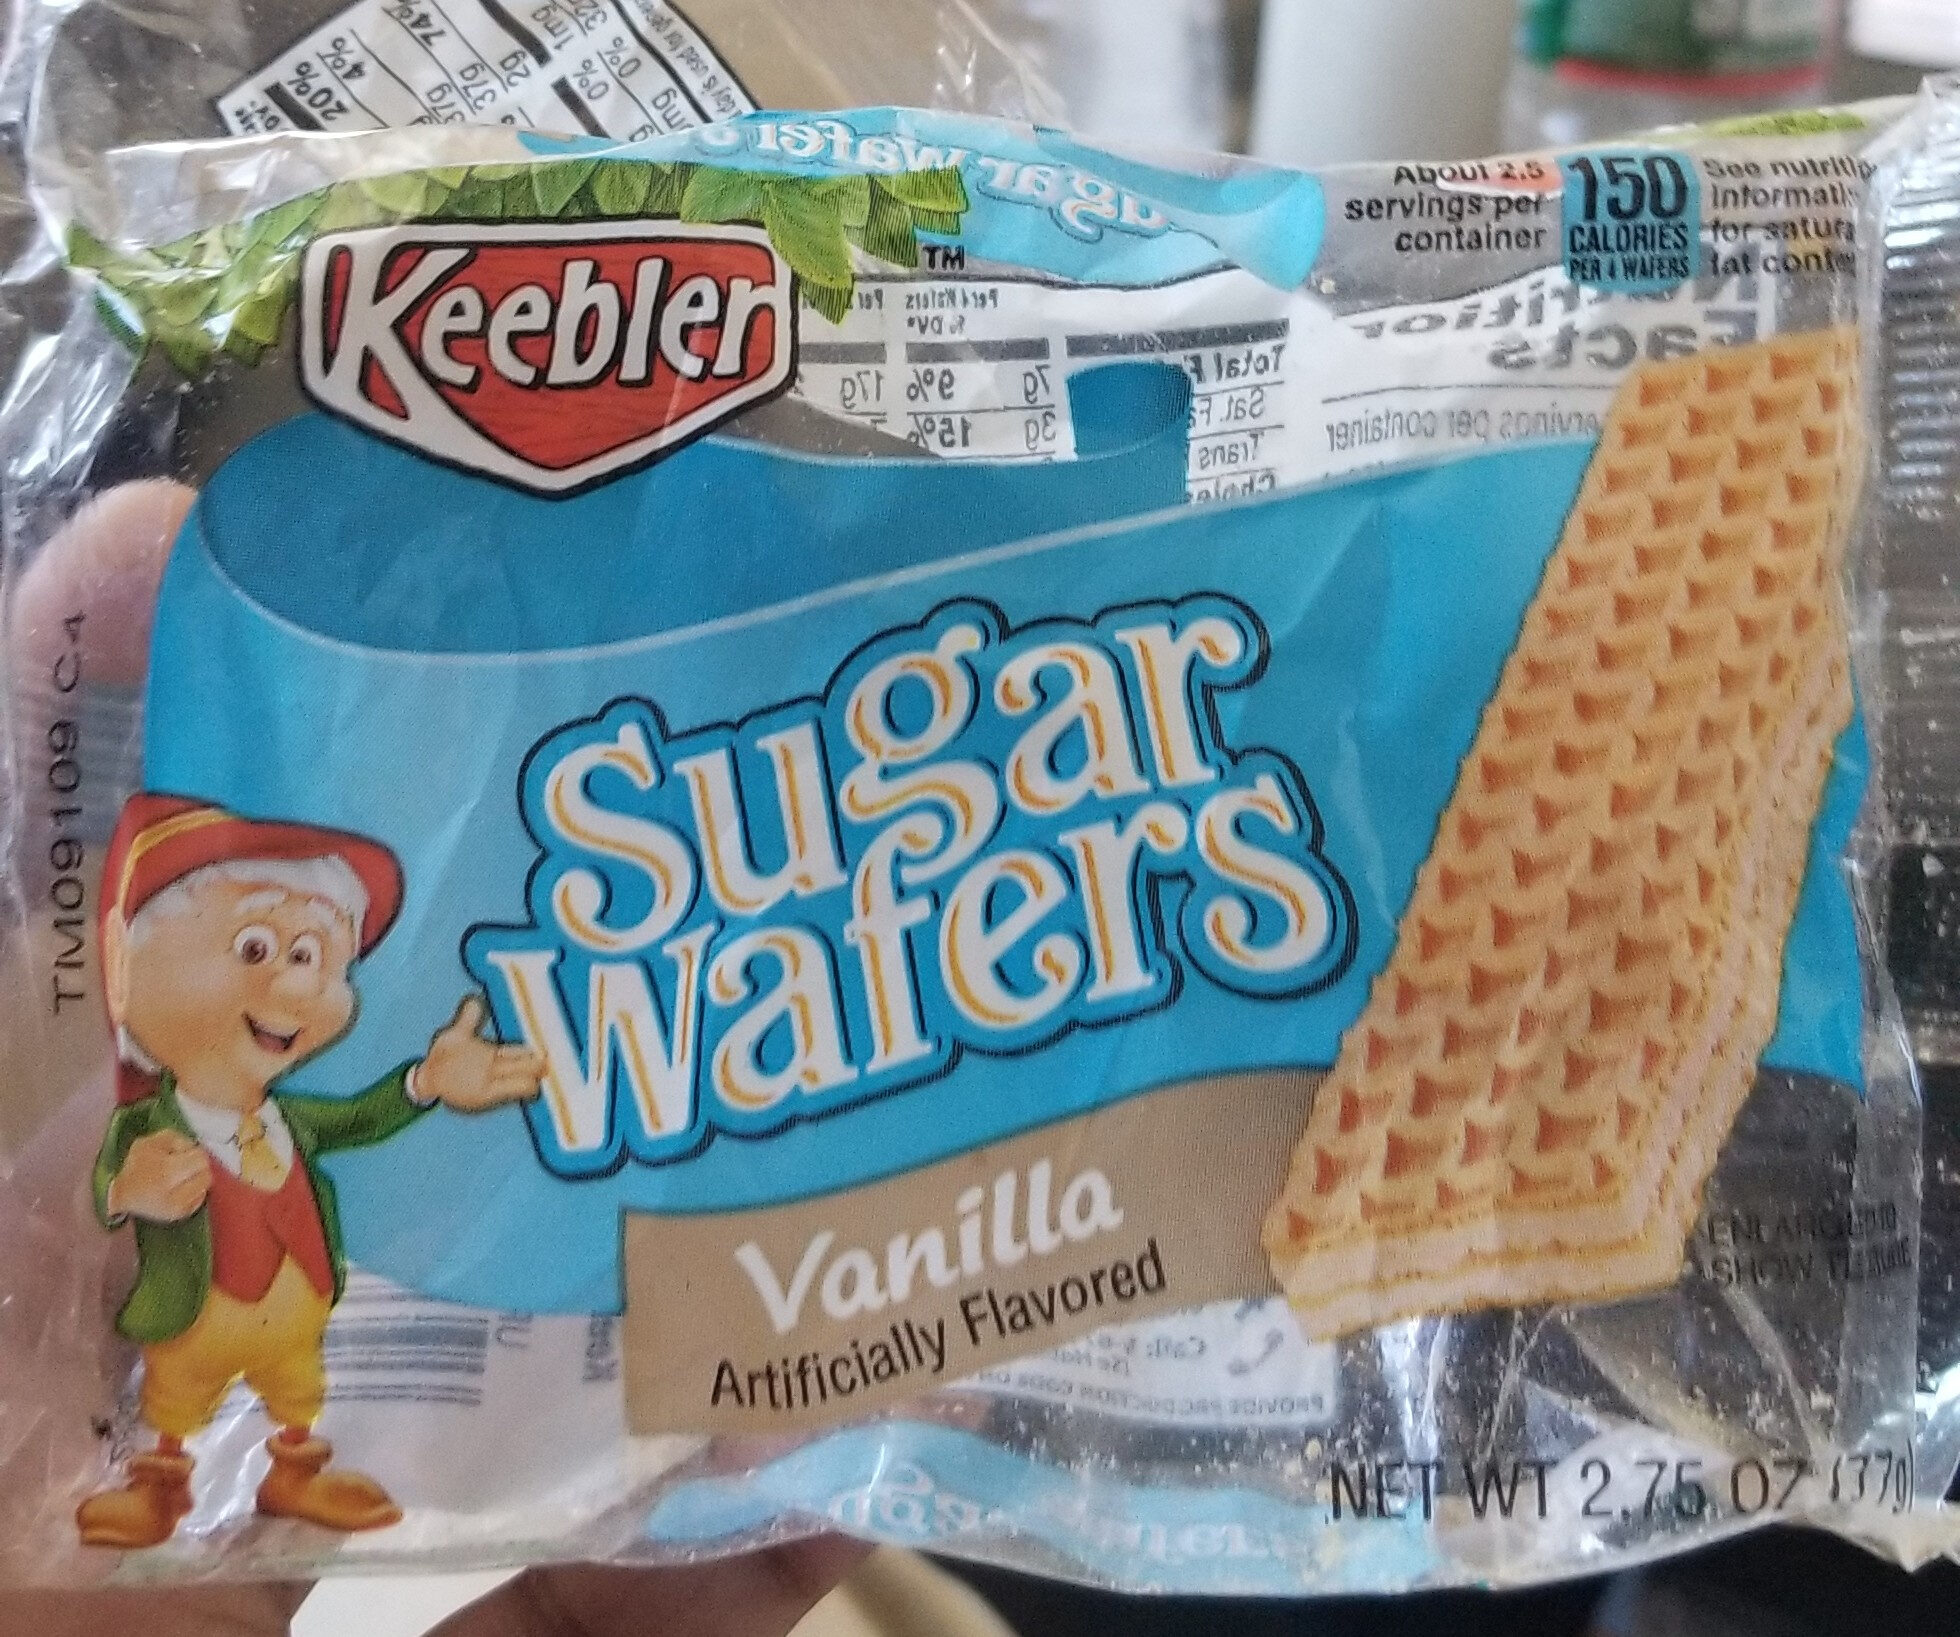 Keebler, sugar wafers, vanilla - Product - en